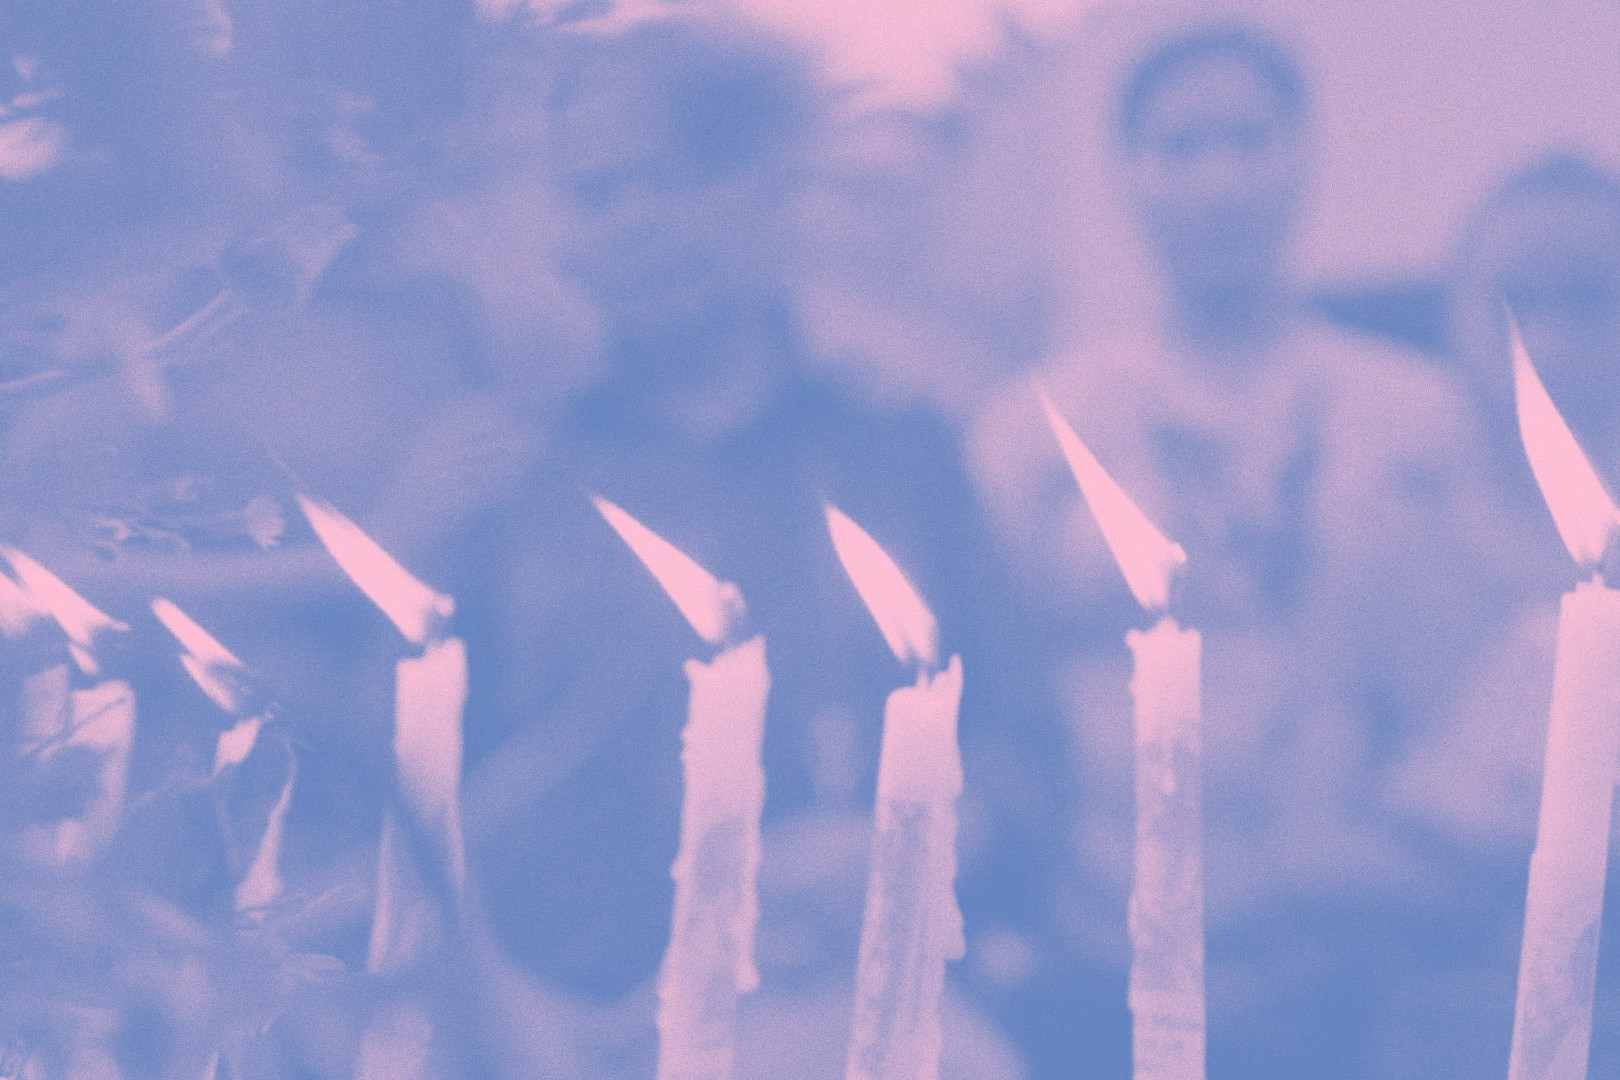 An image of lit candles in the foreground, people in the background. The image is awash in pink and blue gradients.